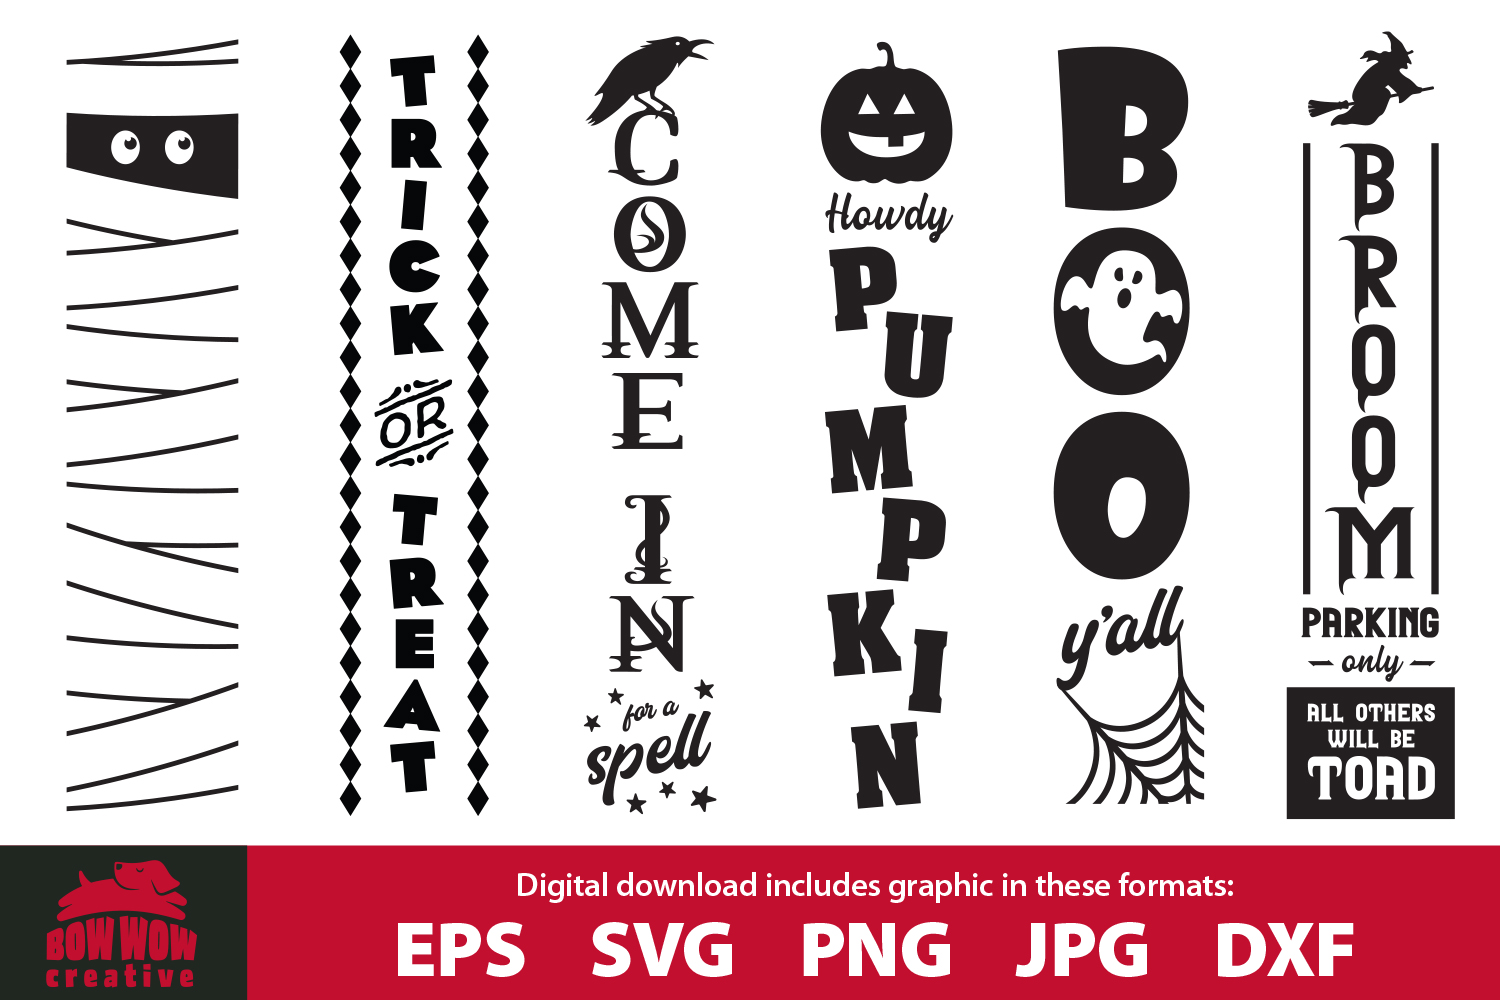 Halloween / Fall porch sign bundle - SVG, EPS, JPG, PNG, DXF example image 1